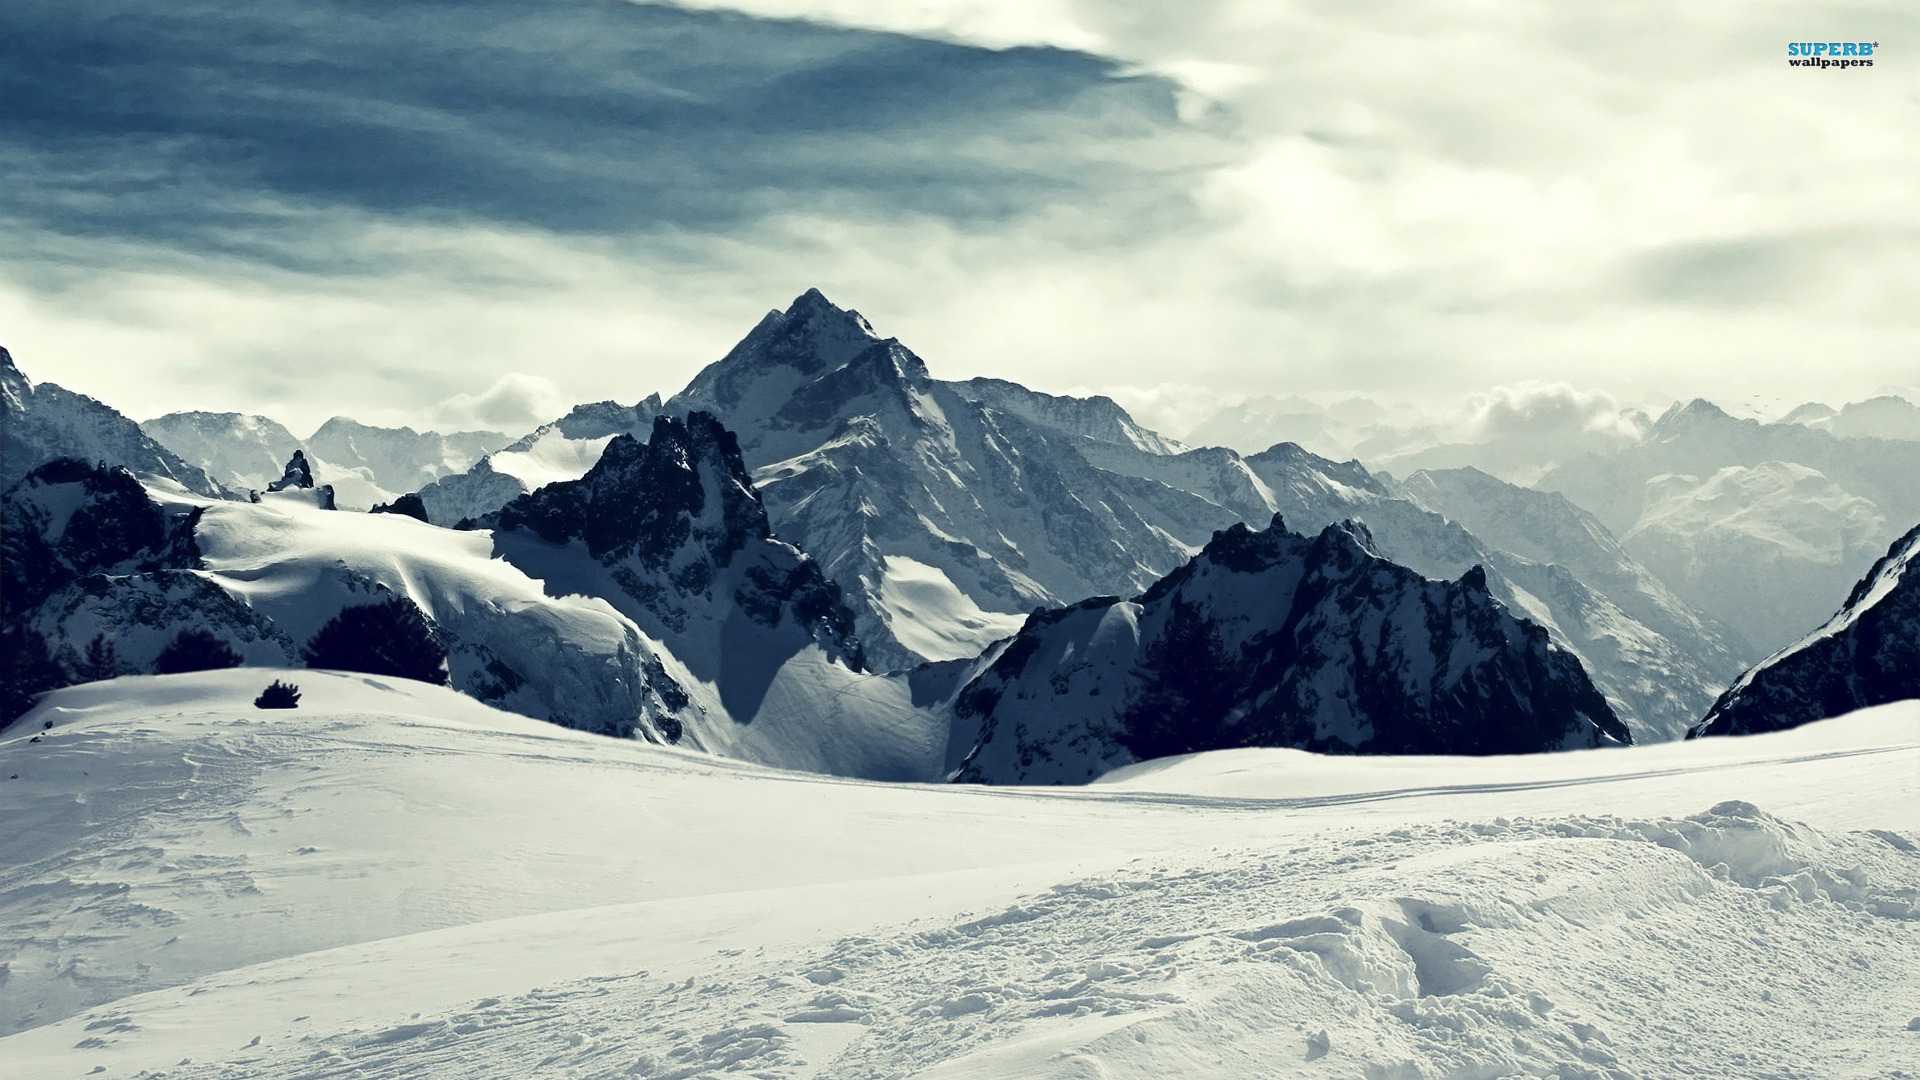 Snowy mountains wallpaper 1920x1080